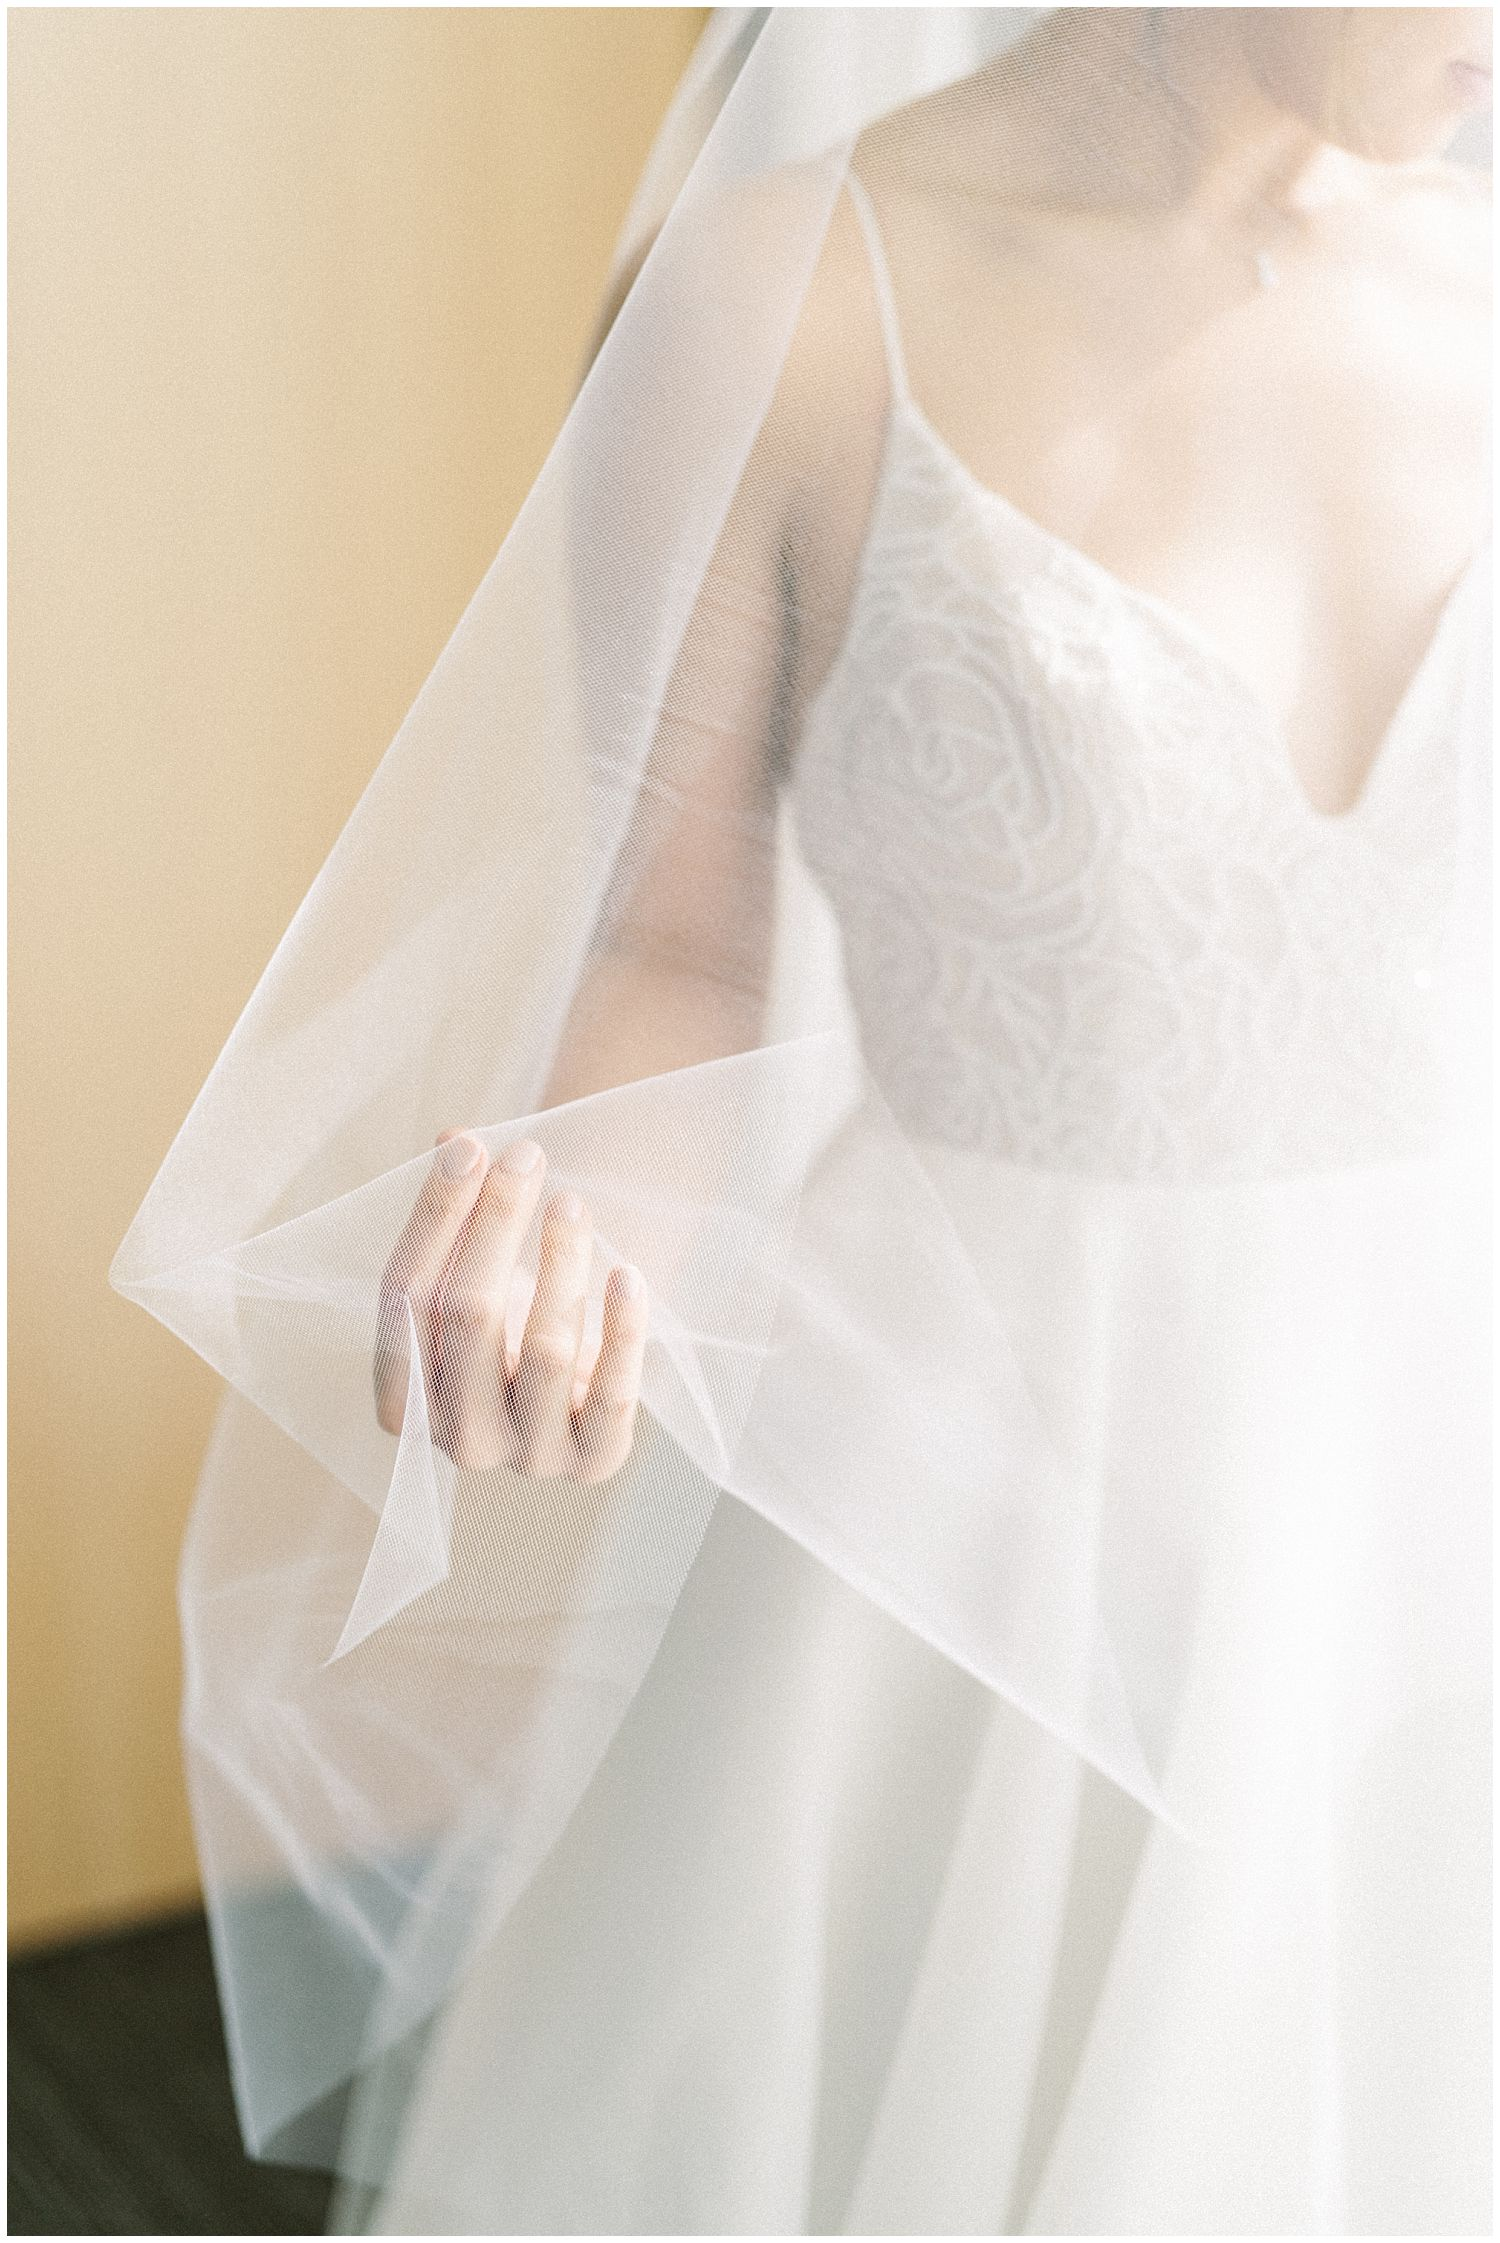 Bridal Gown at Meridan House Wedding in Washington DC